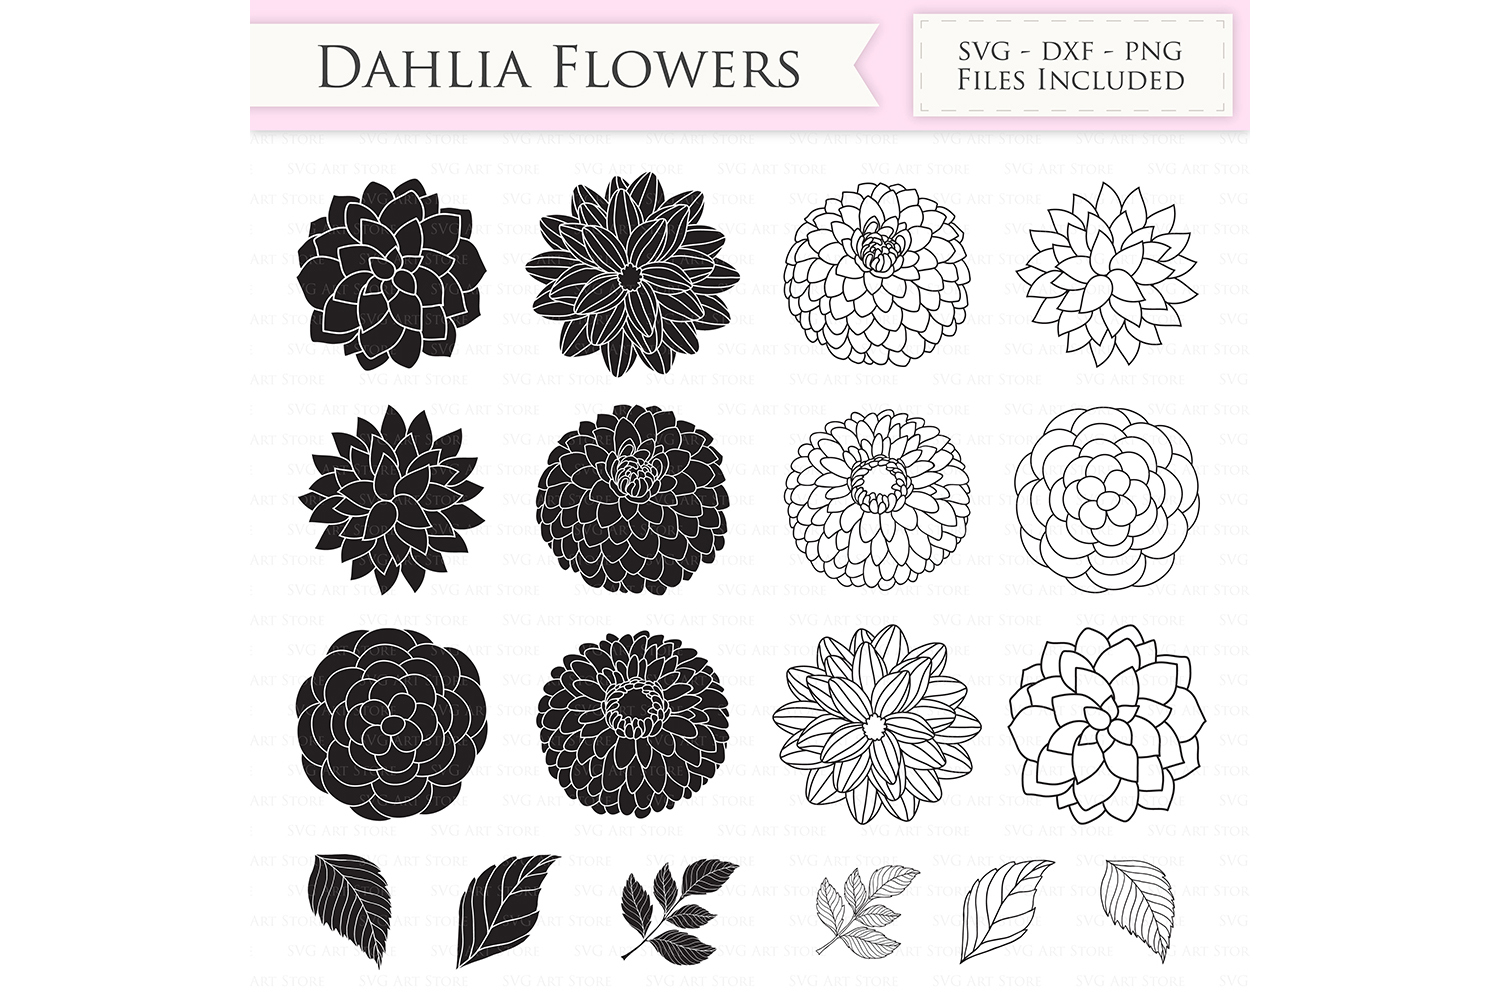 Dahlia Flowers SVG Files - Peony Flowers Outline,  Floral svg cutting files for Cricut and Silhouette - SVG, dxf, png included example image 2